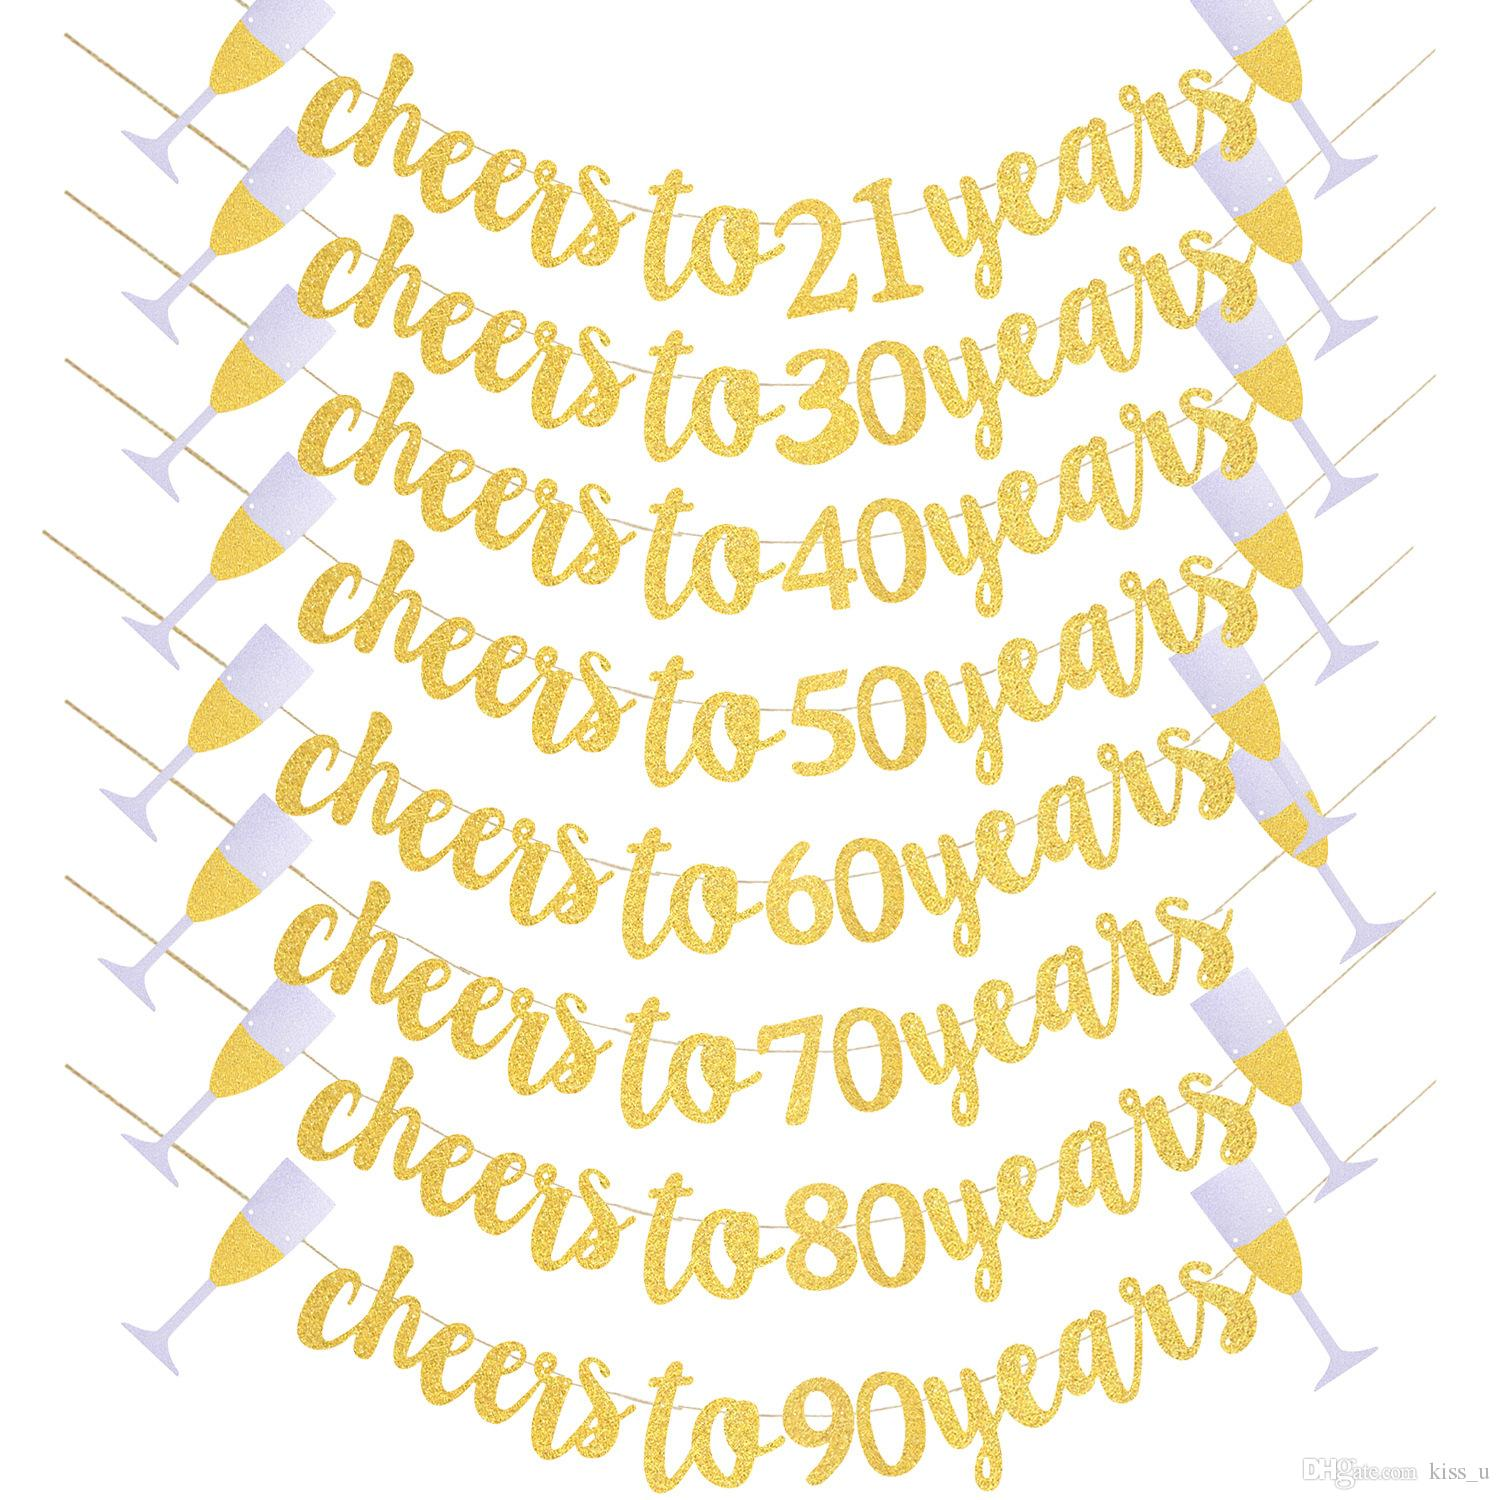 birthday party decorations for cheers to 21 years banner happy birthday gold sign wedding anniversary party decor supplies